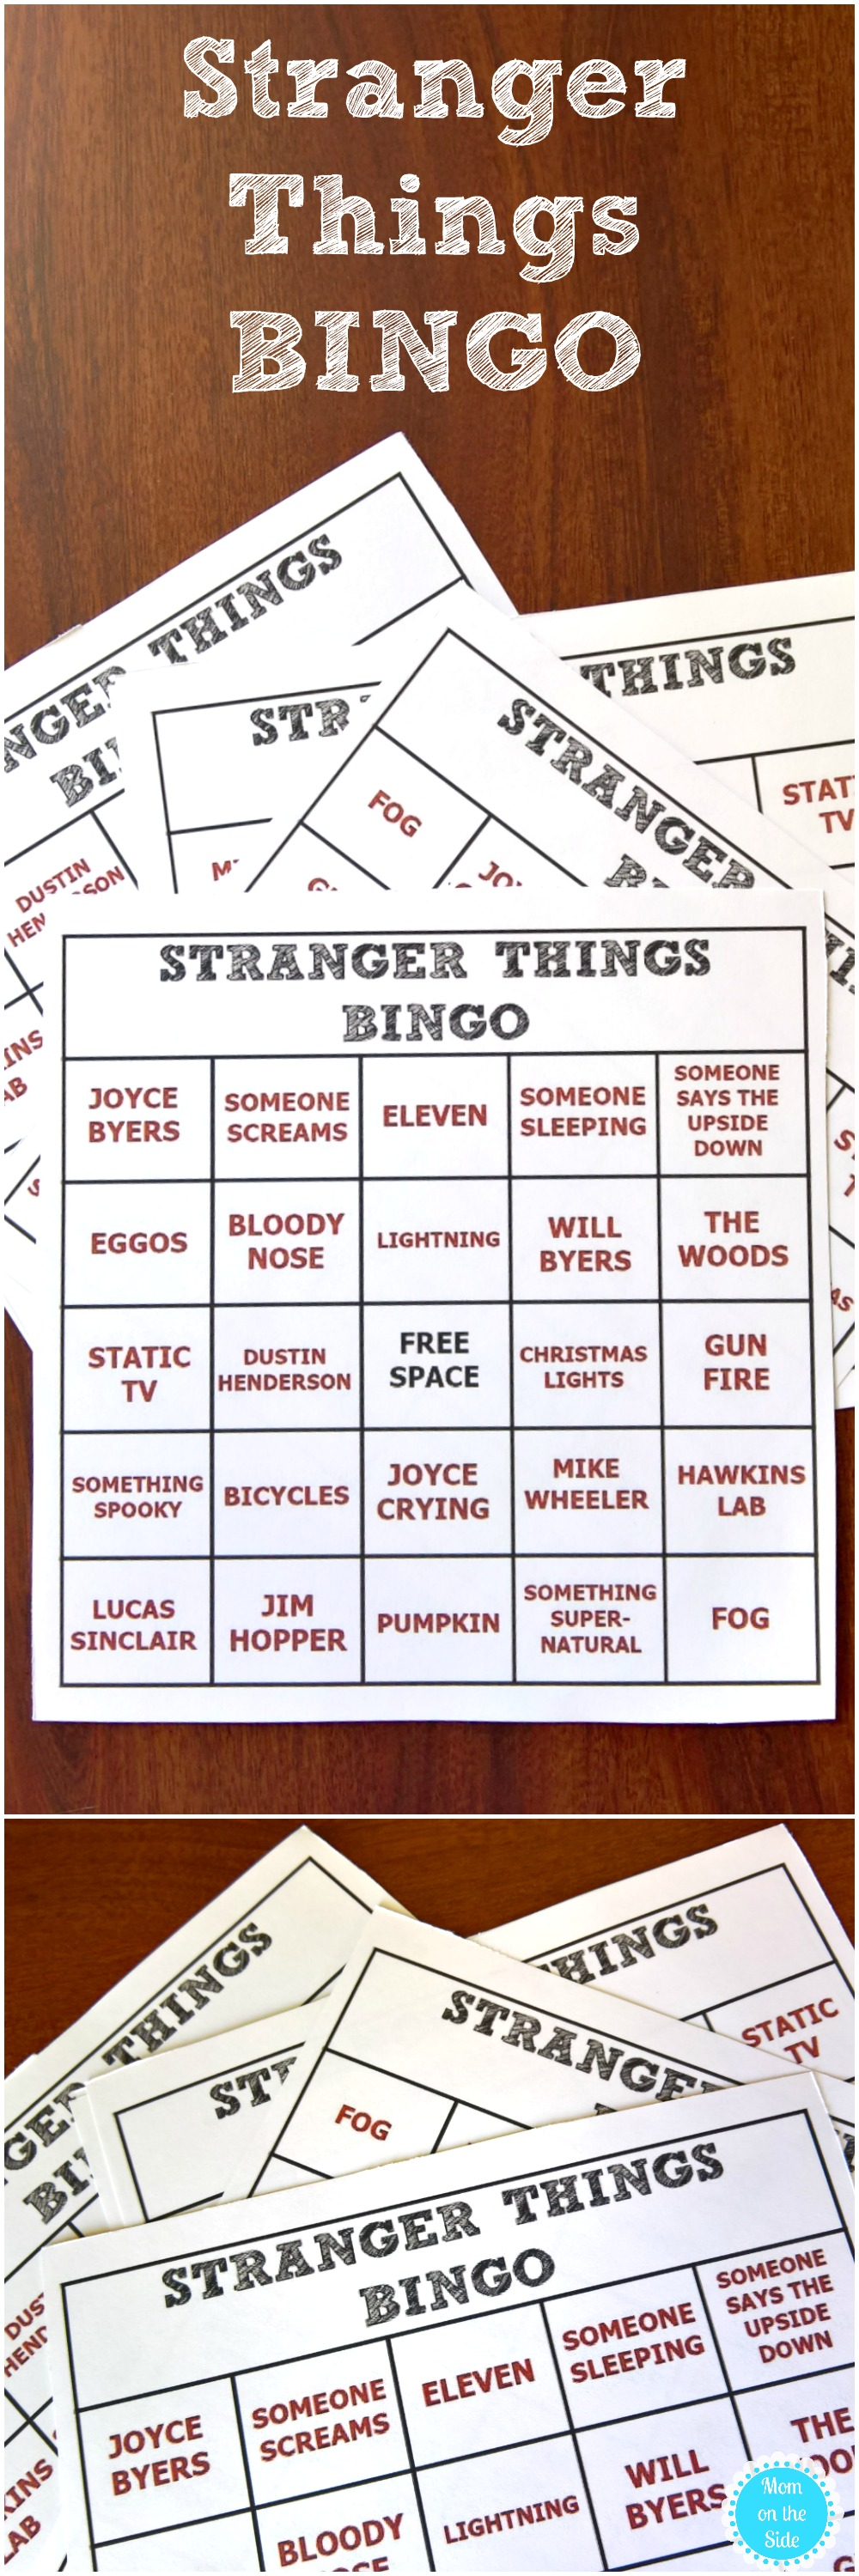 Stranger Things 2 is coming and these Printable Stranger Things BINGO Cards will add to the excitement!